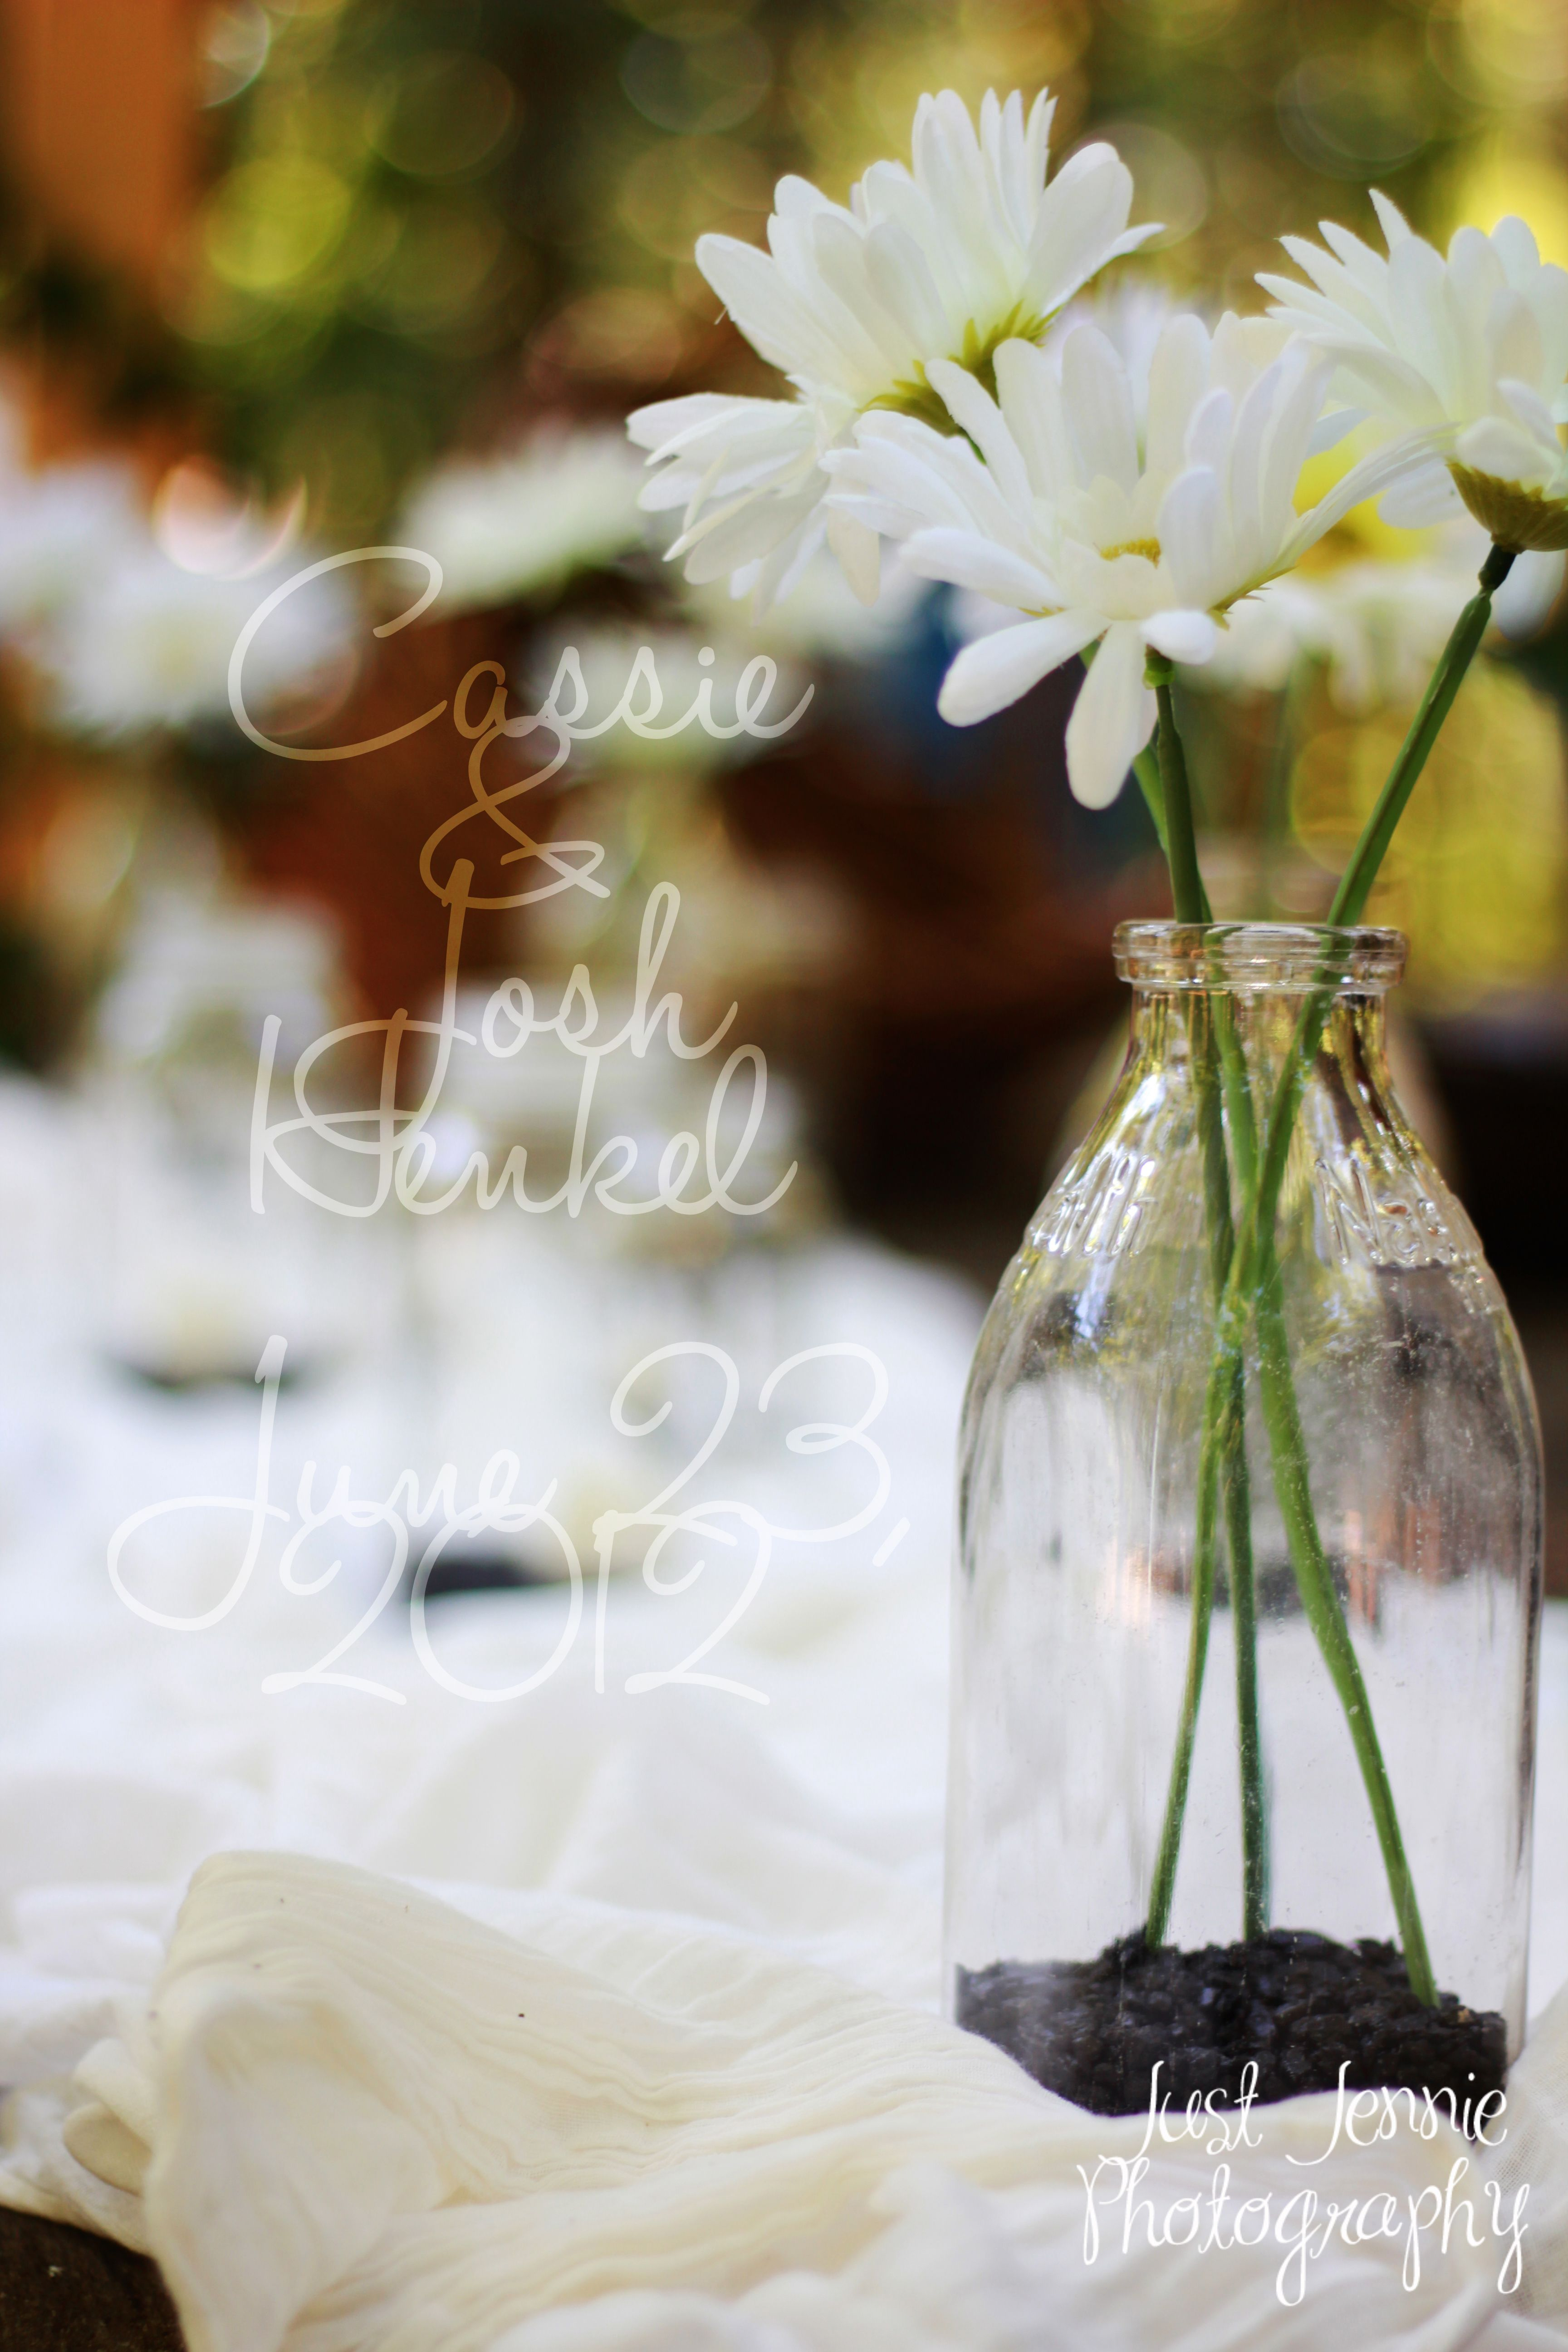 Photo from a Country themed Wedding I took. Love the table decor ...